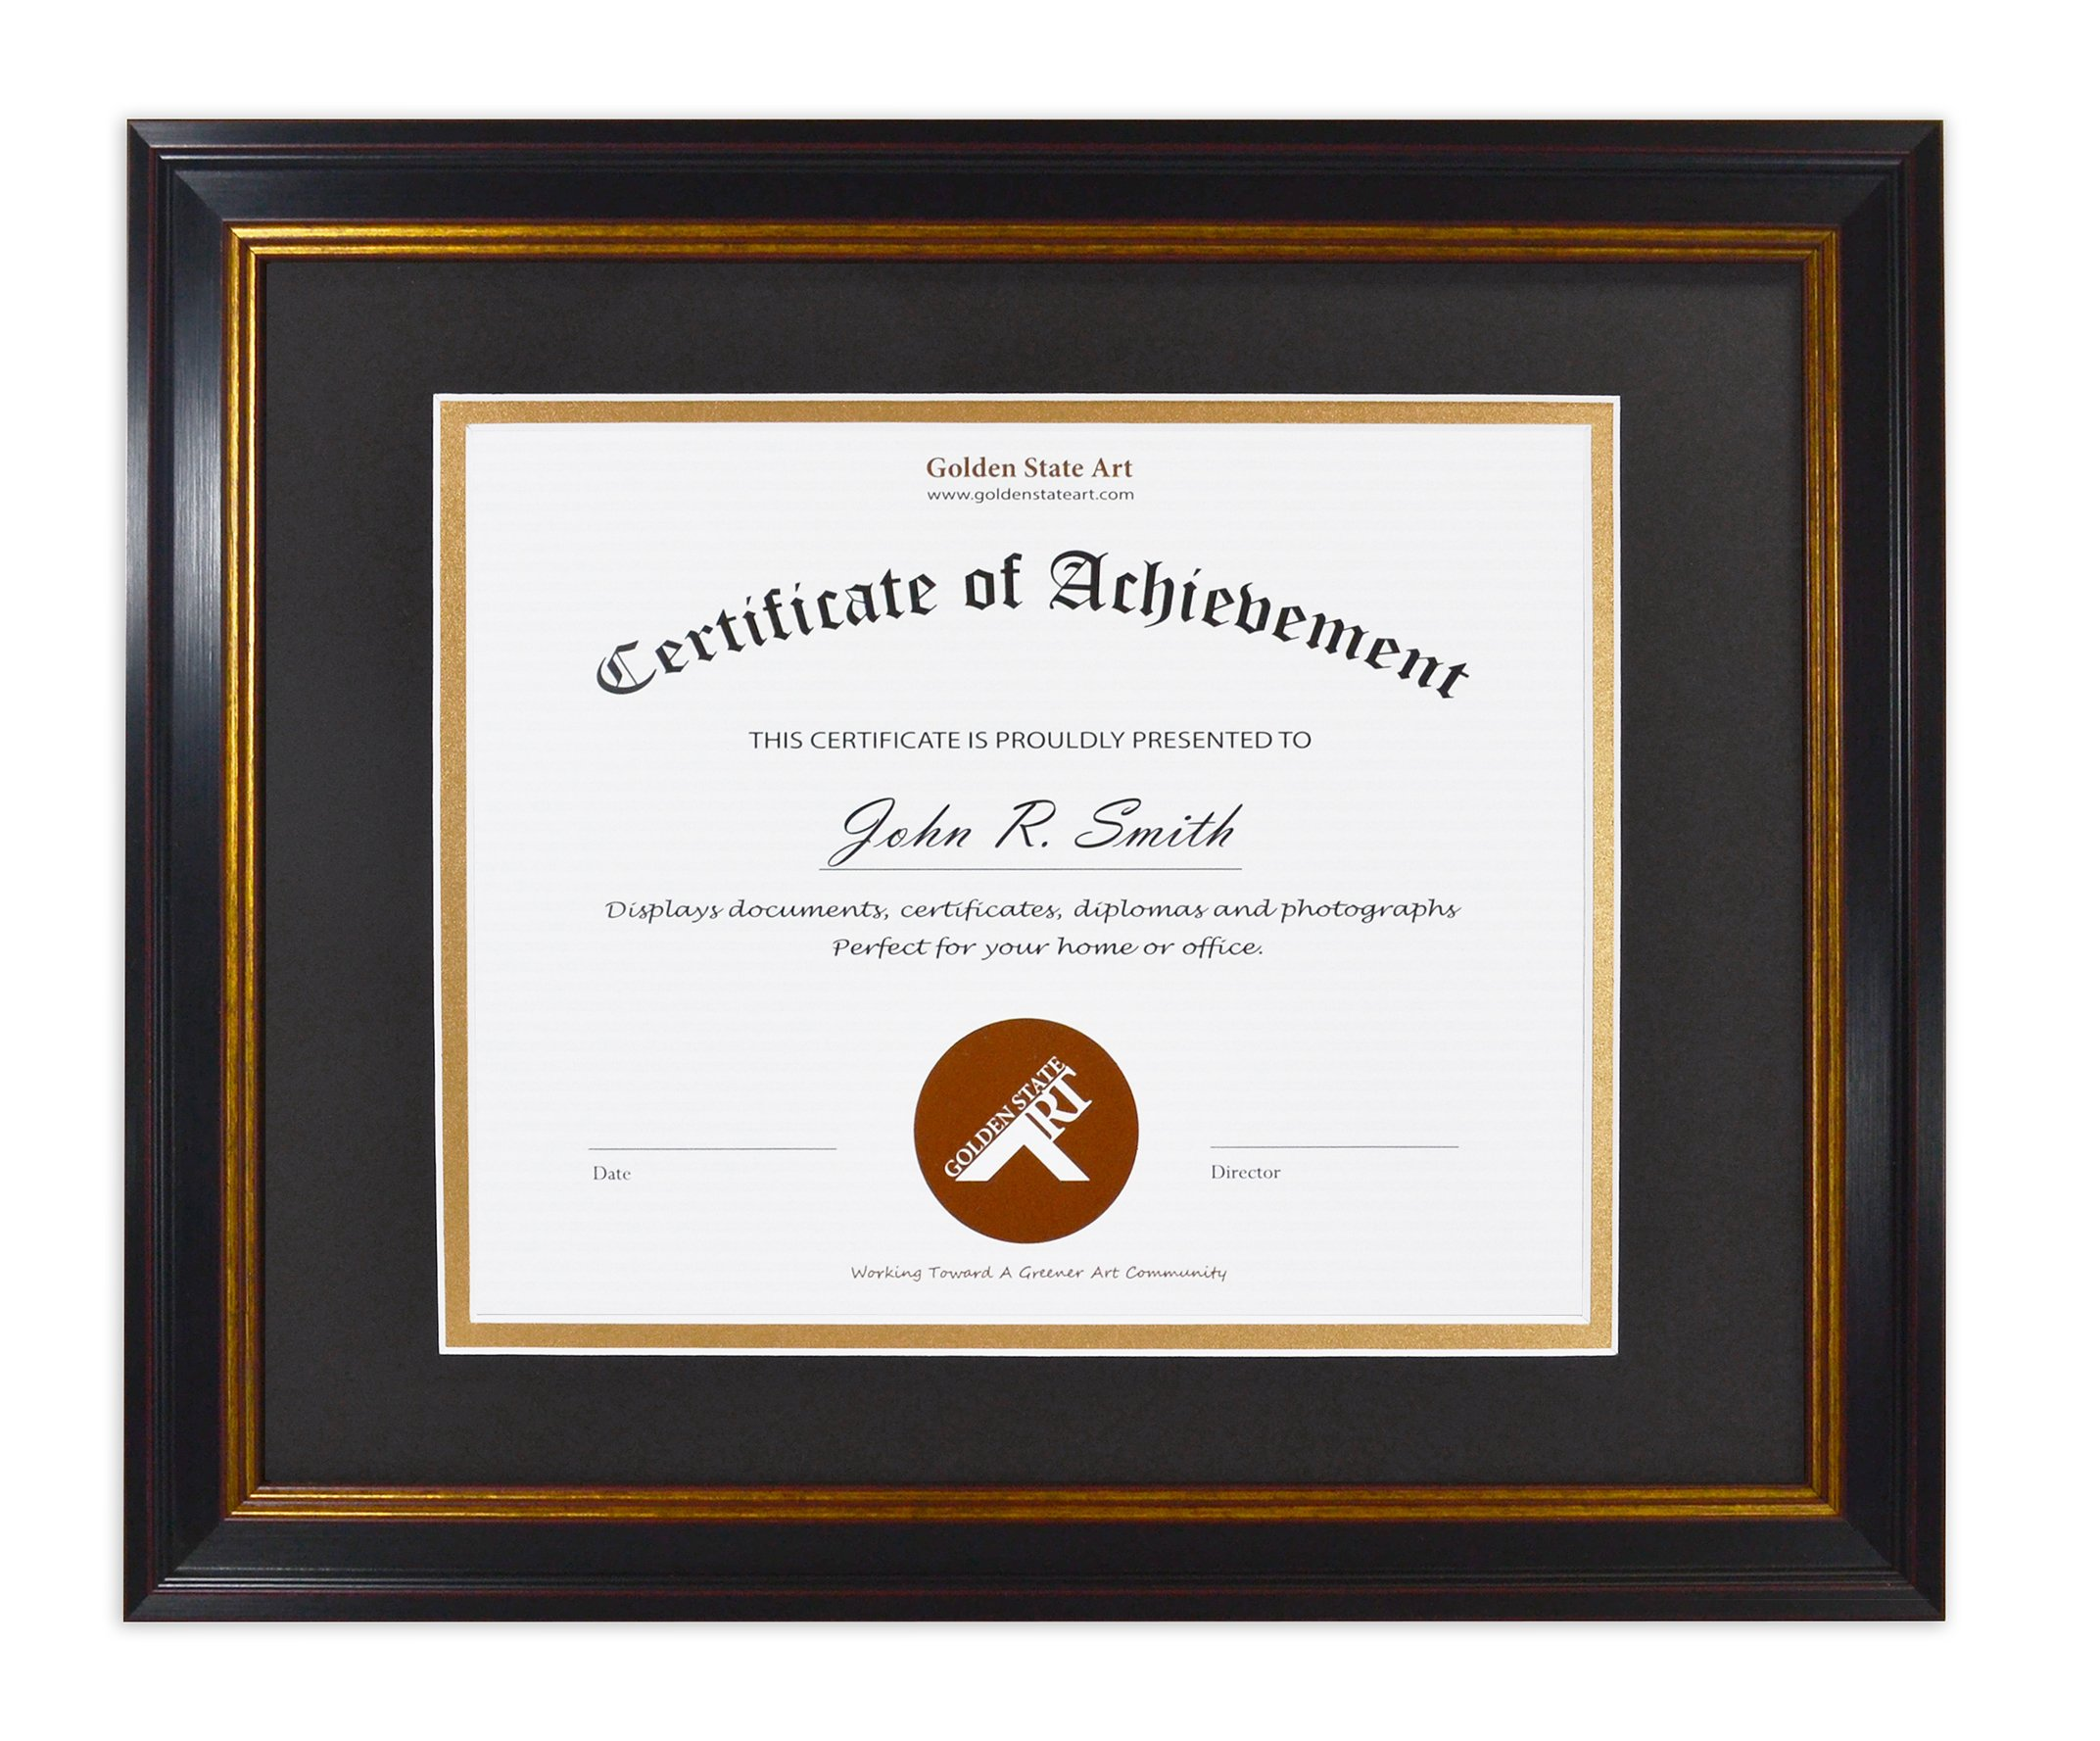 Golden State Art, 11x14 Frame for 8x10 Diploma/Certificate, Black Gold & Burgundy Color. Includes Black Over Gold Double Mat and Real Glass by Golden State Art